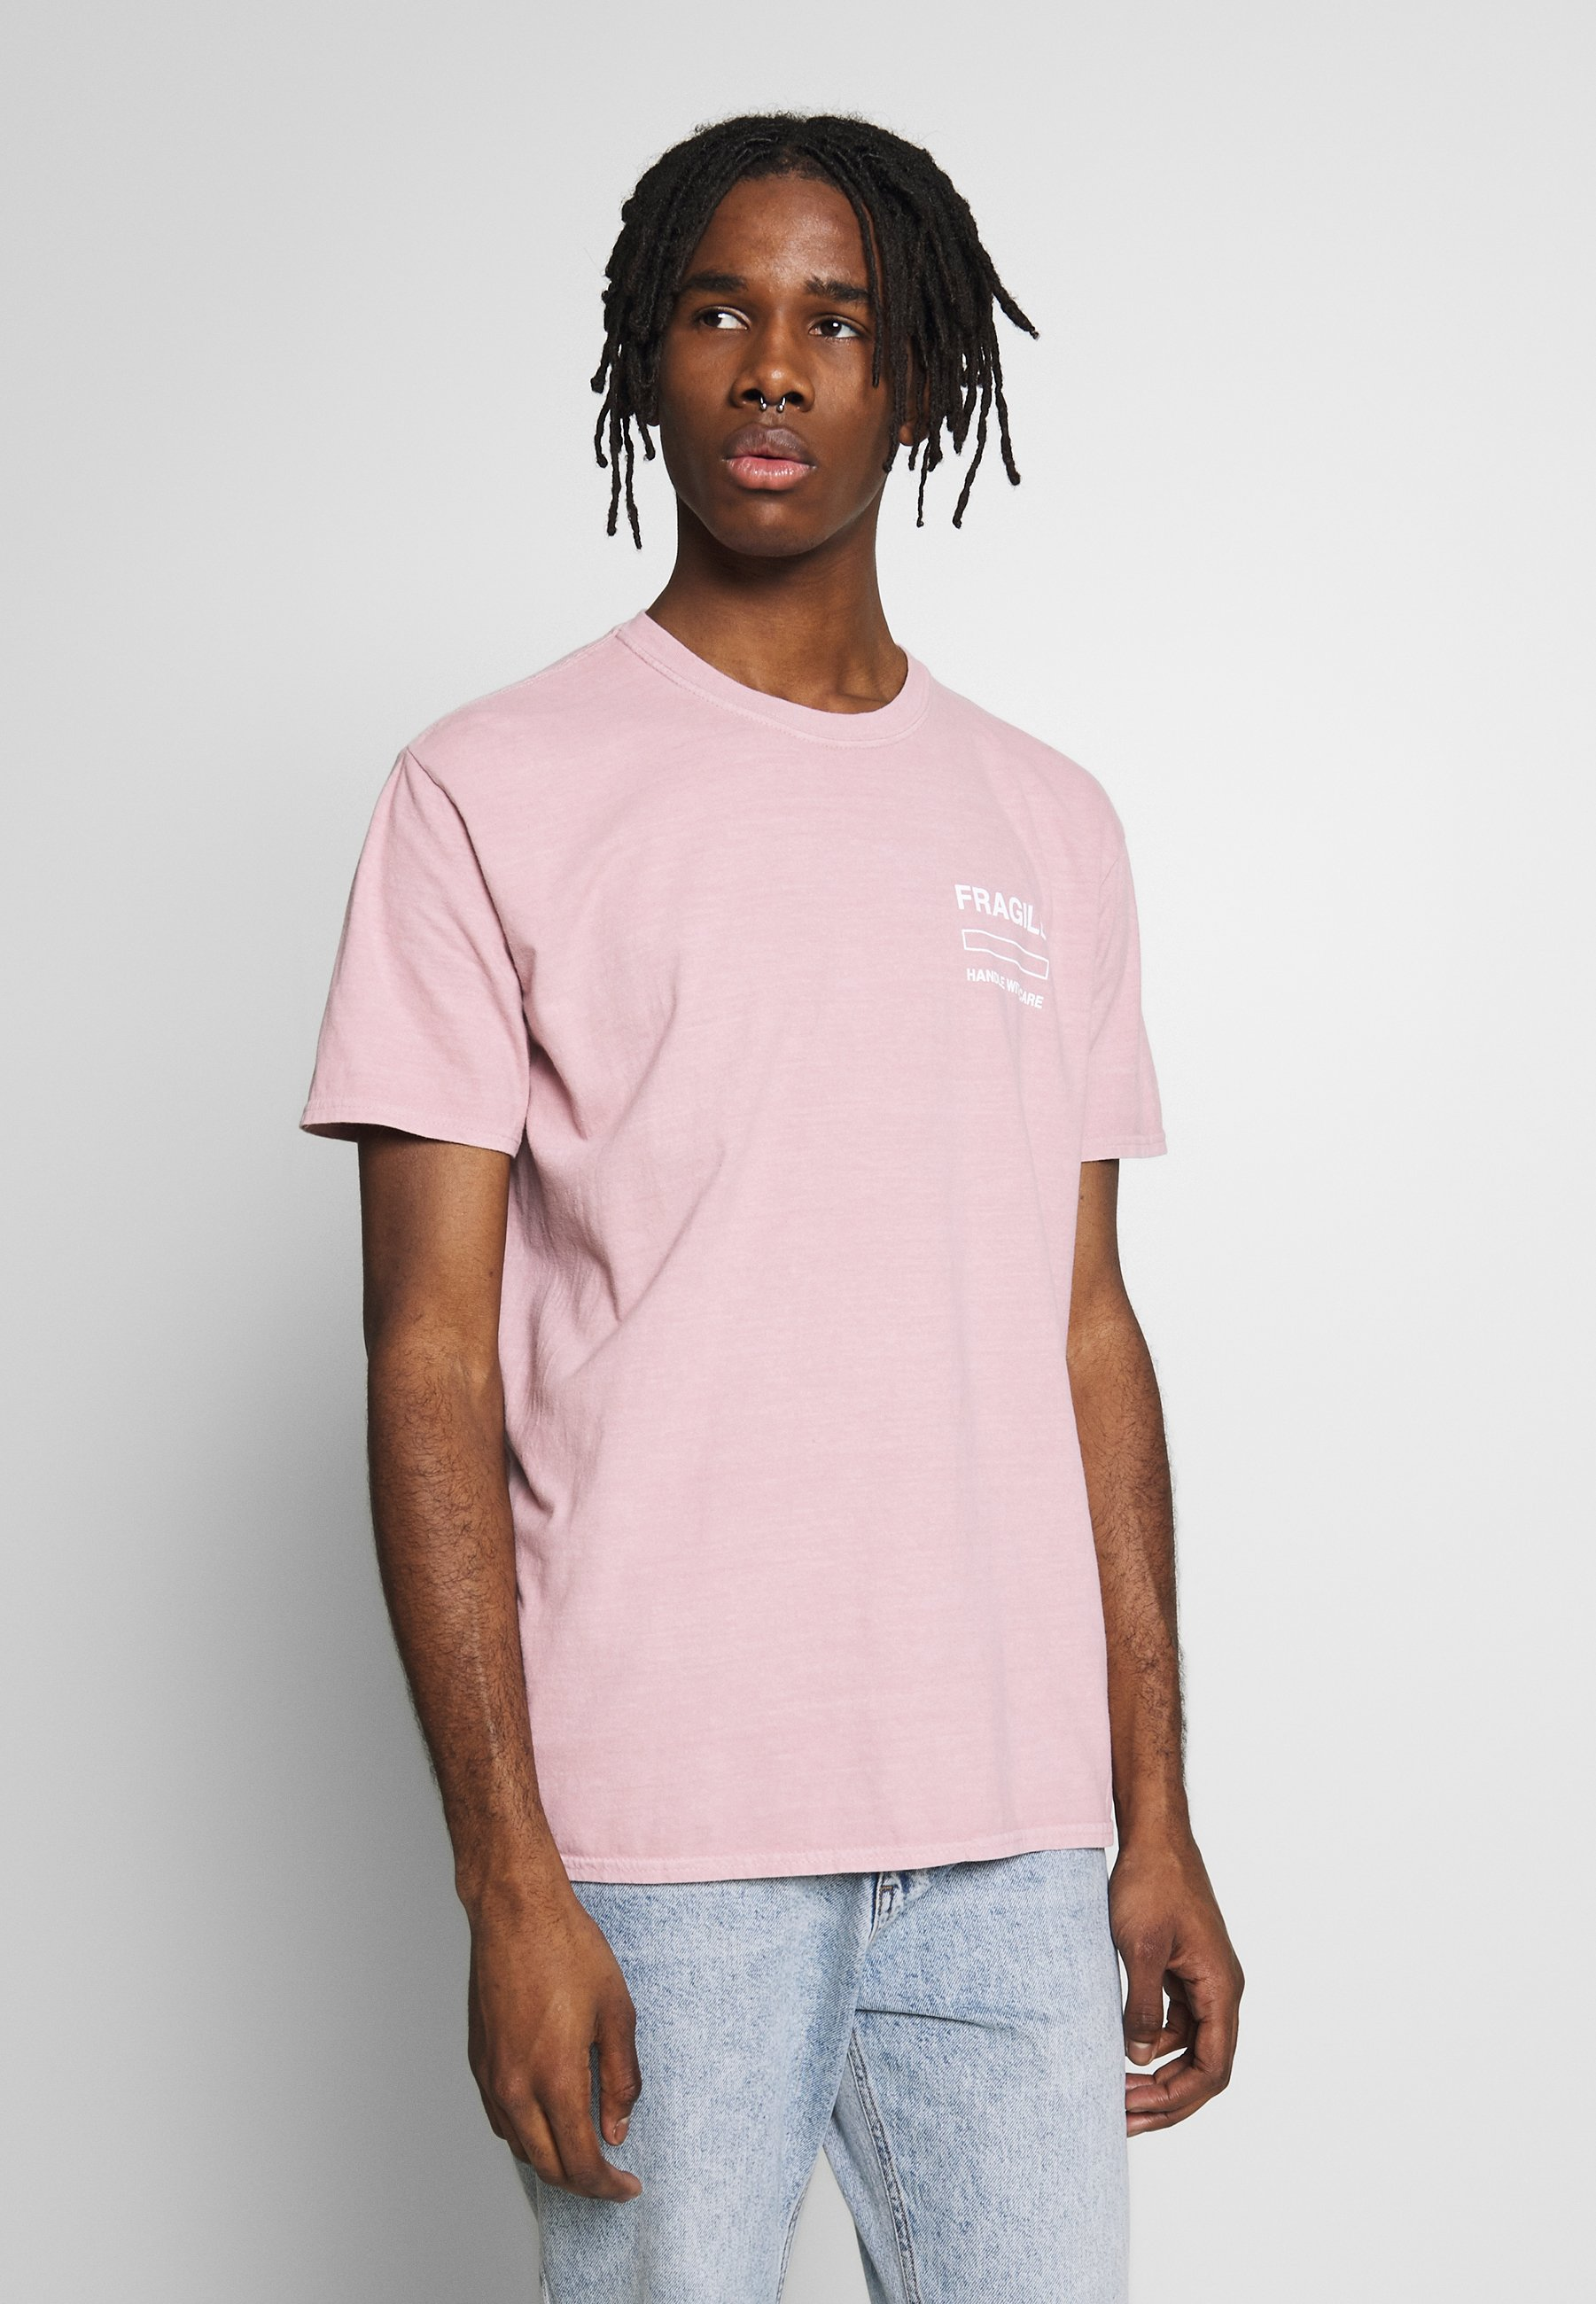 New Look Fragile Tee - T-shirt Print Mid Pink